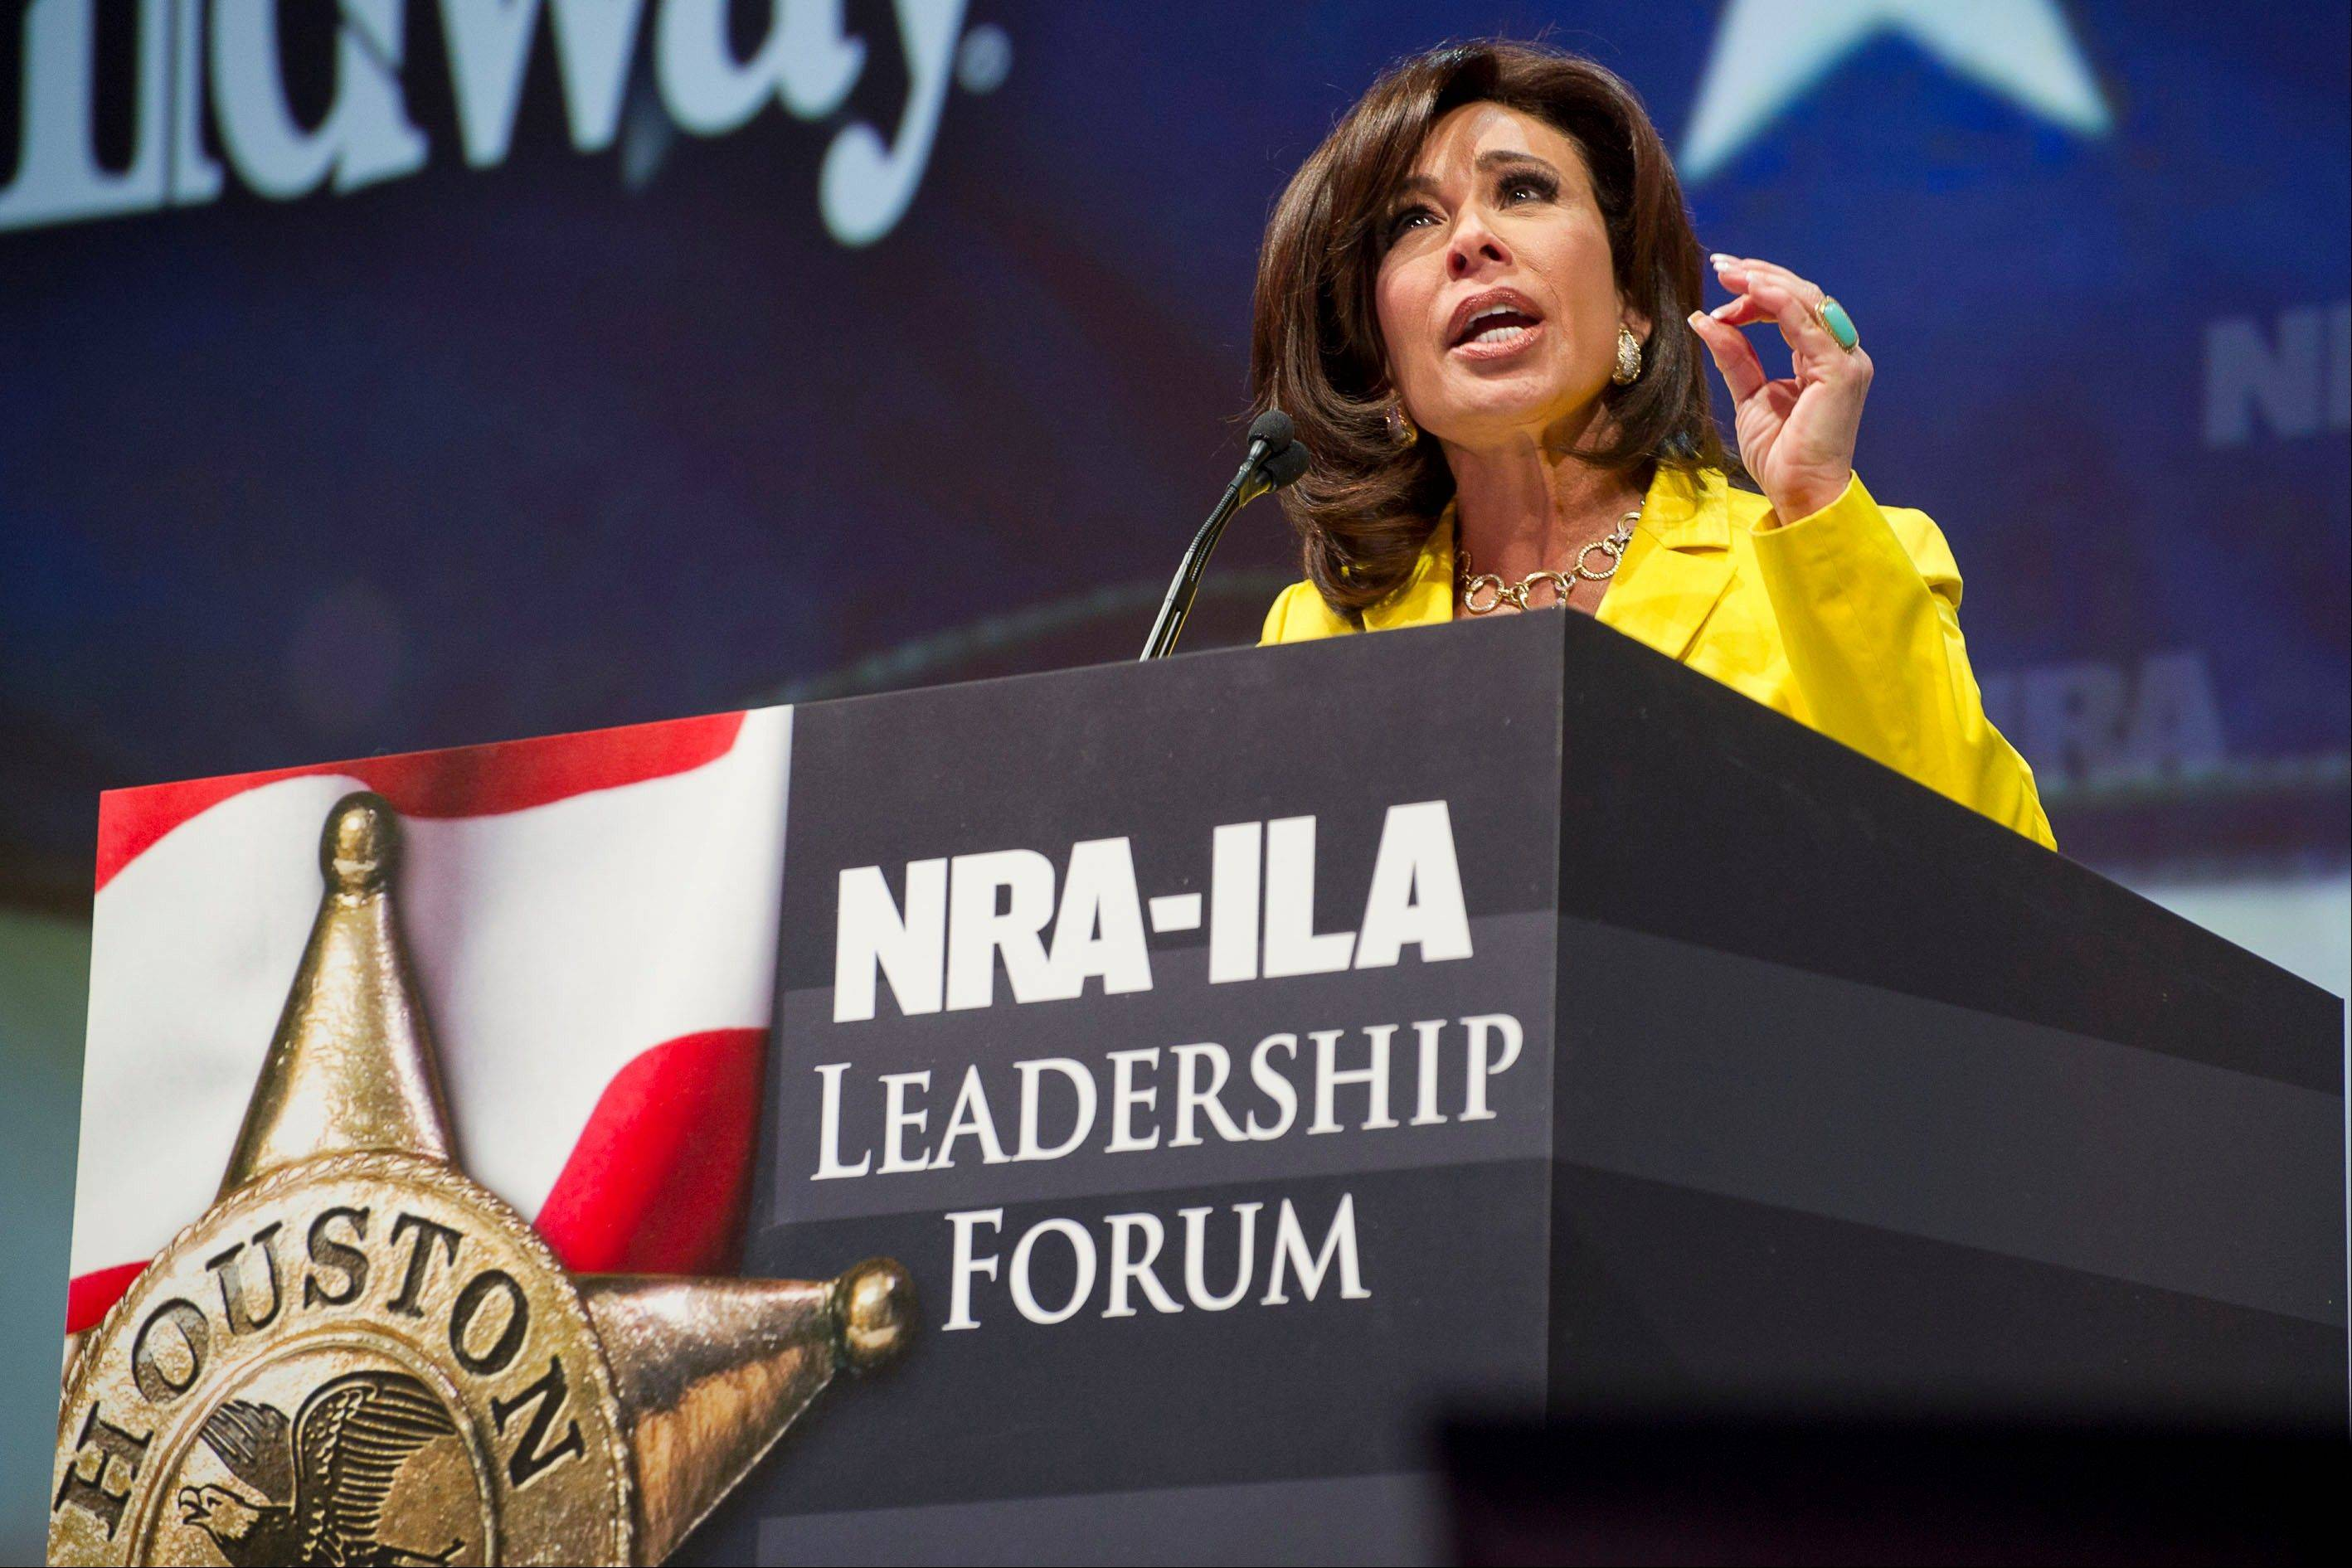 TV personality Jeanine Pirro speaks during the leadership forum.